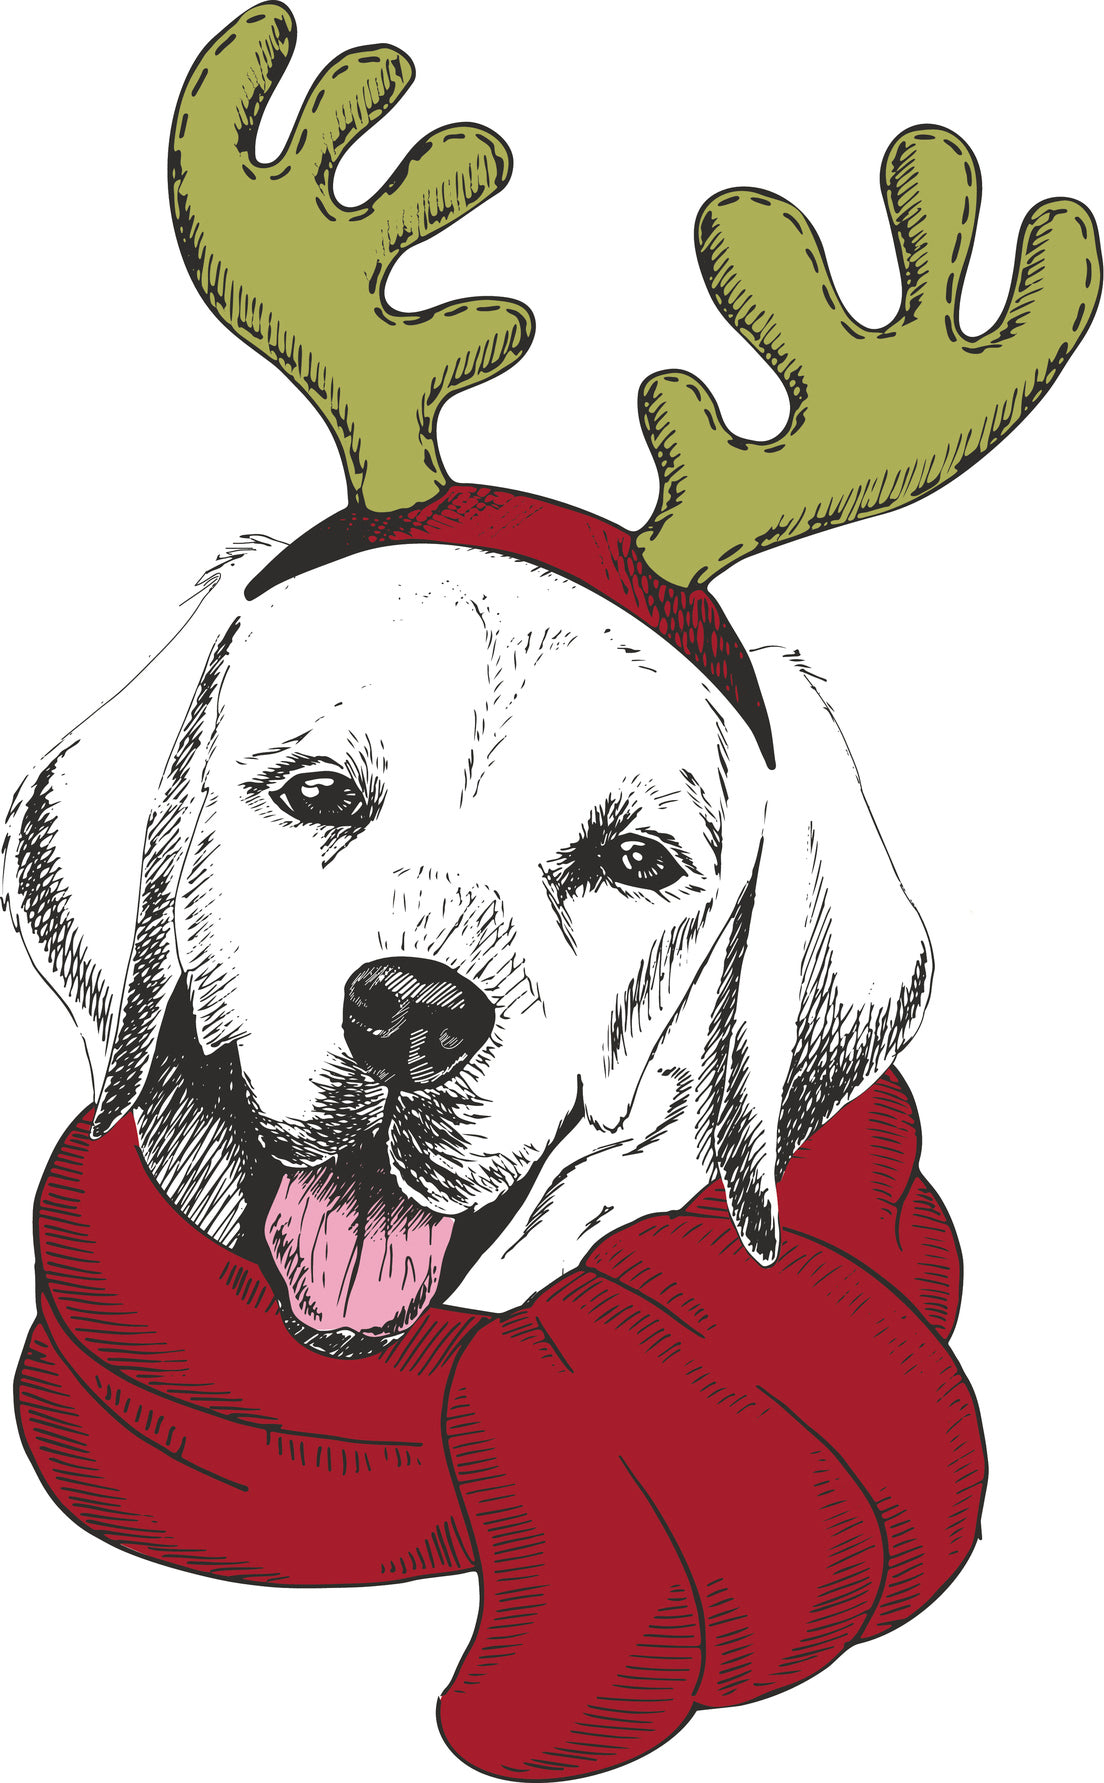 Adorable Merry Christmas Holiday Puppy Dog in Reindeer Costume - Labrador Retriever Vinyl Decal Sticker